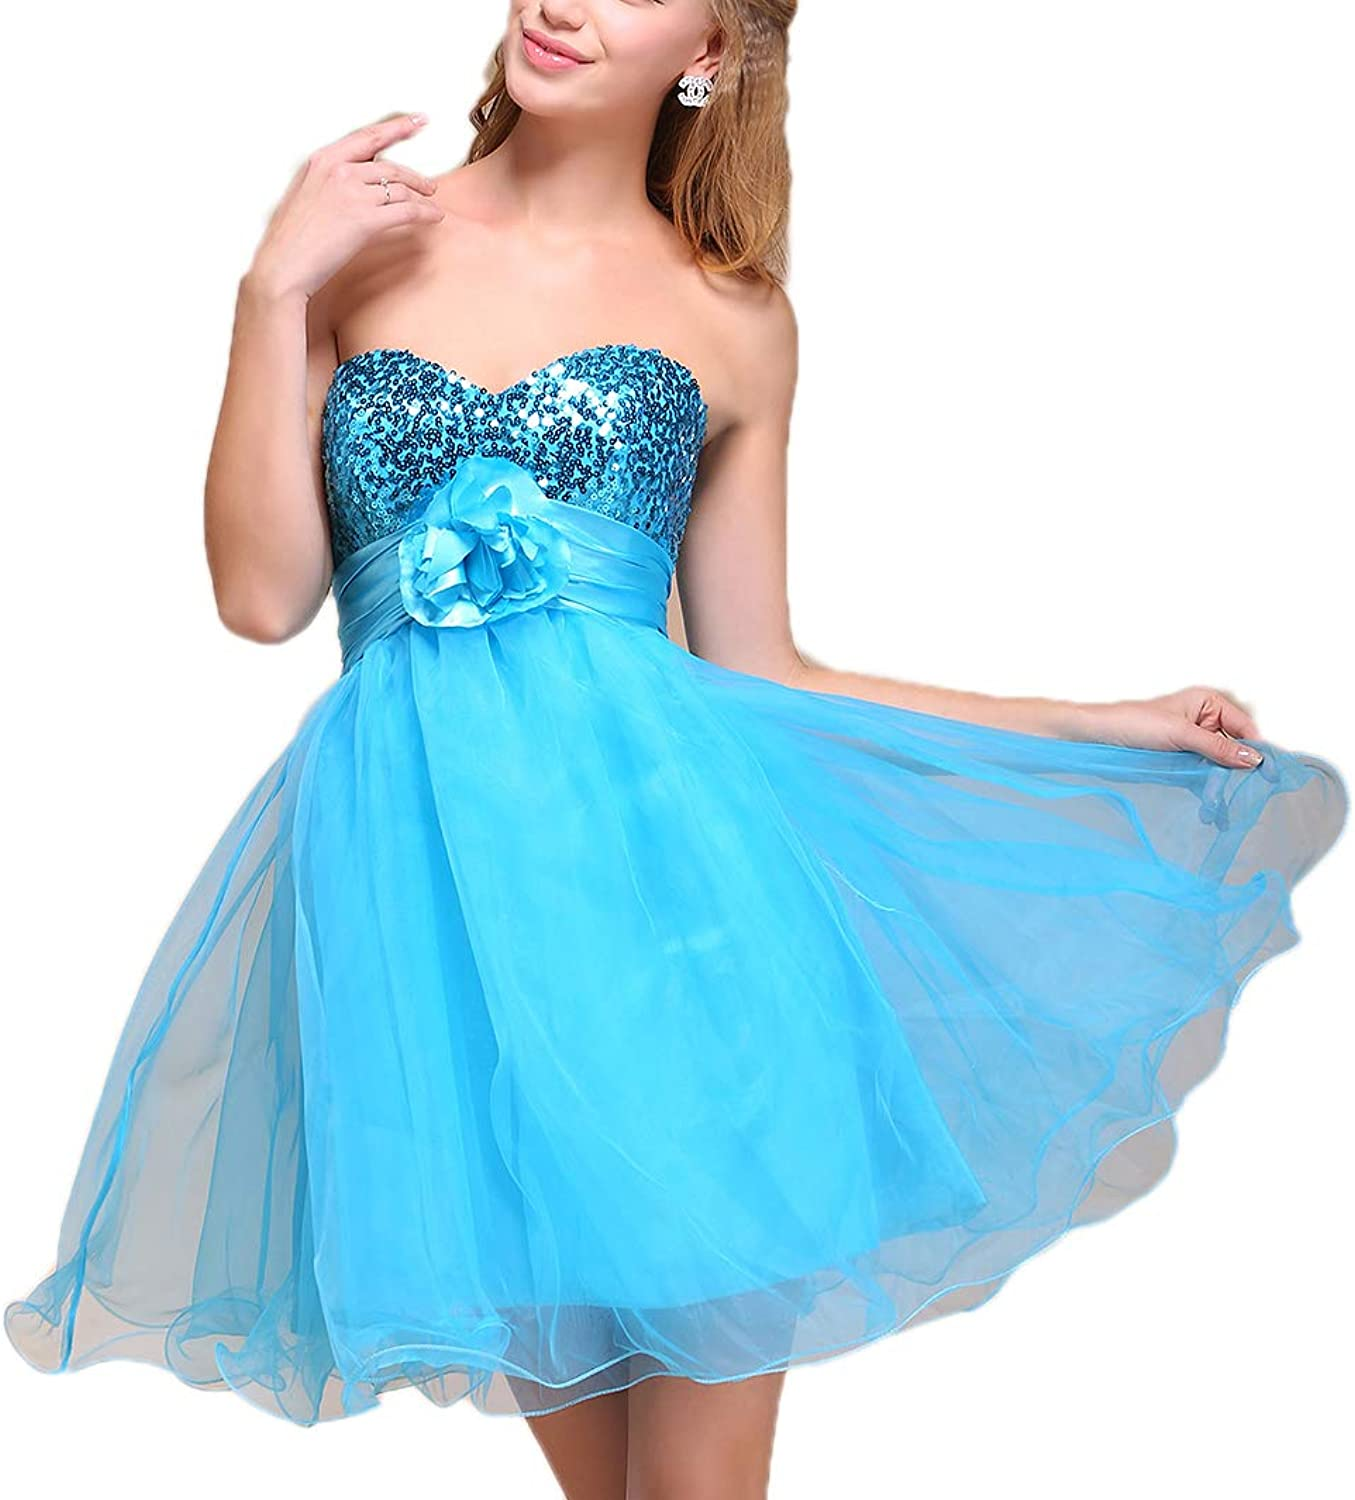 Miaolian Grils Sleeveless Tulle Ball Gown Prom Short Dress H009